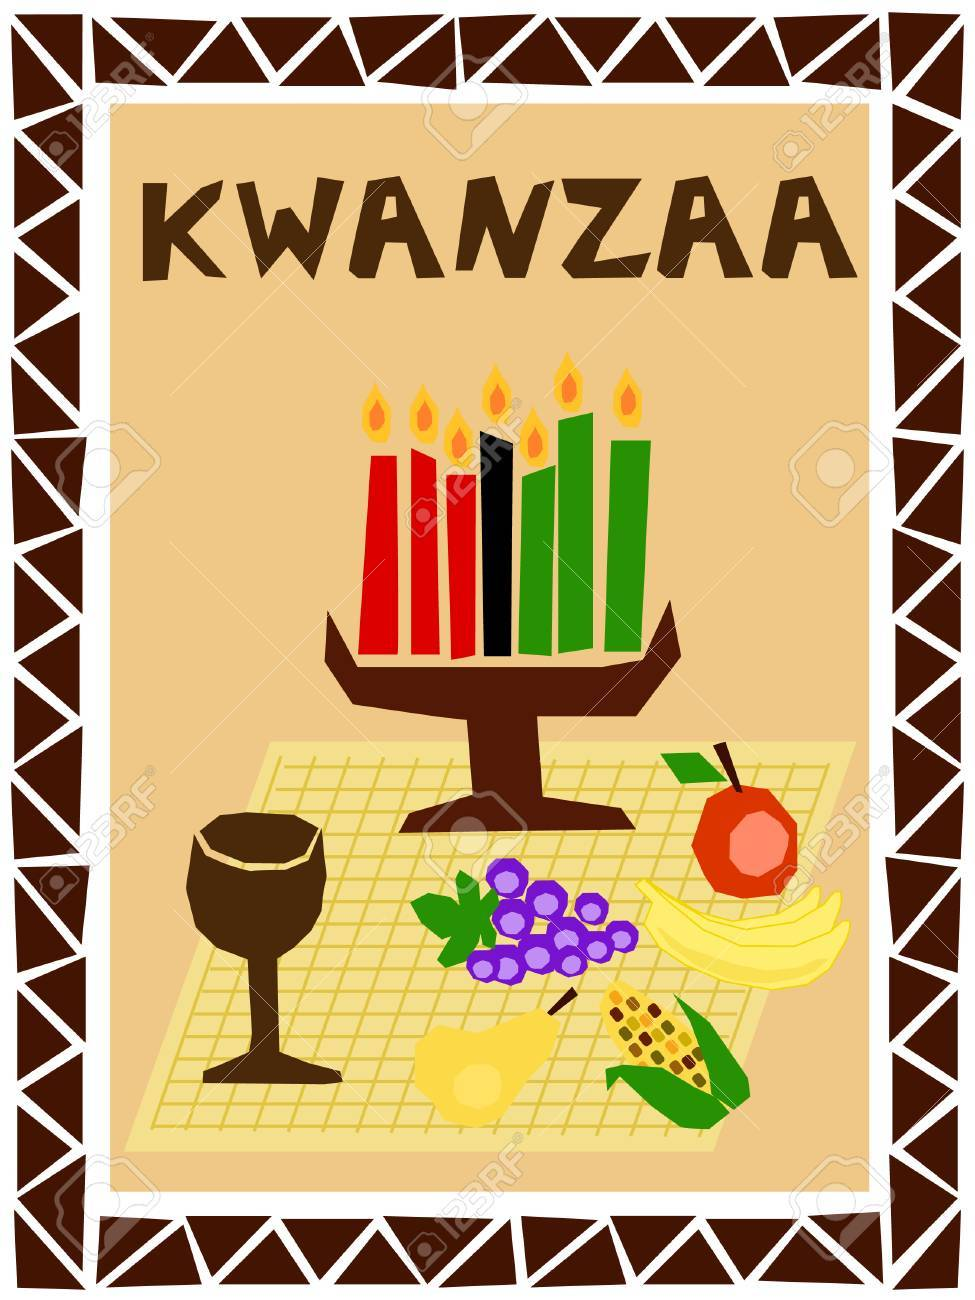 traditional kwanzaa stuff drawn in simple manner Stock Vector - 8111895